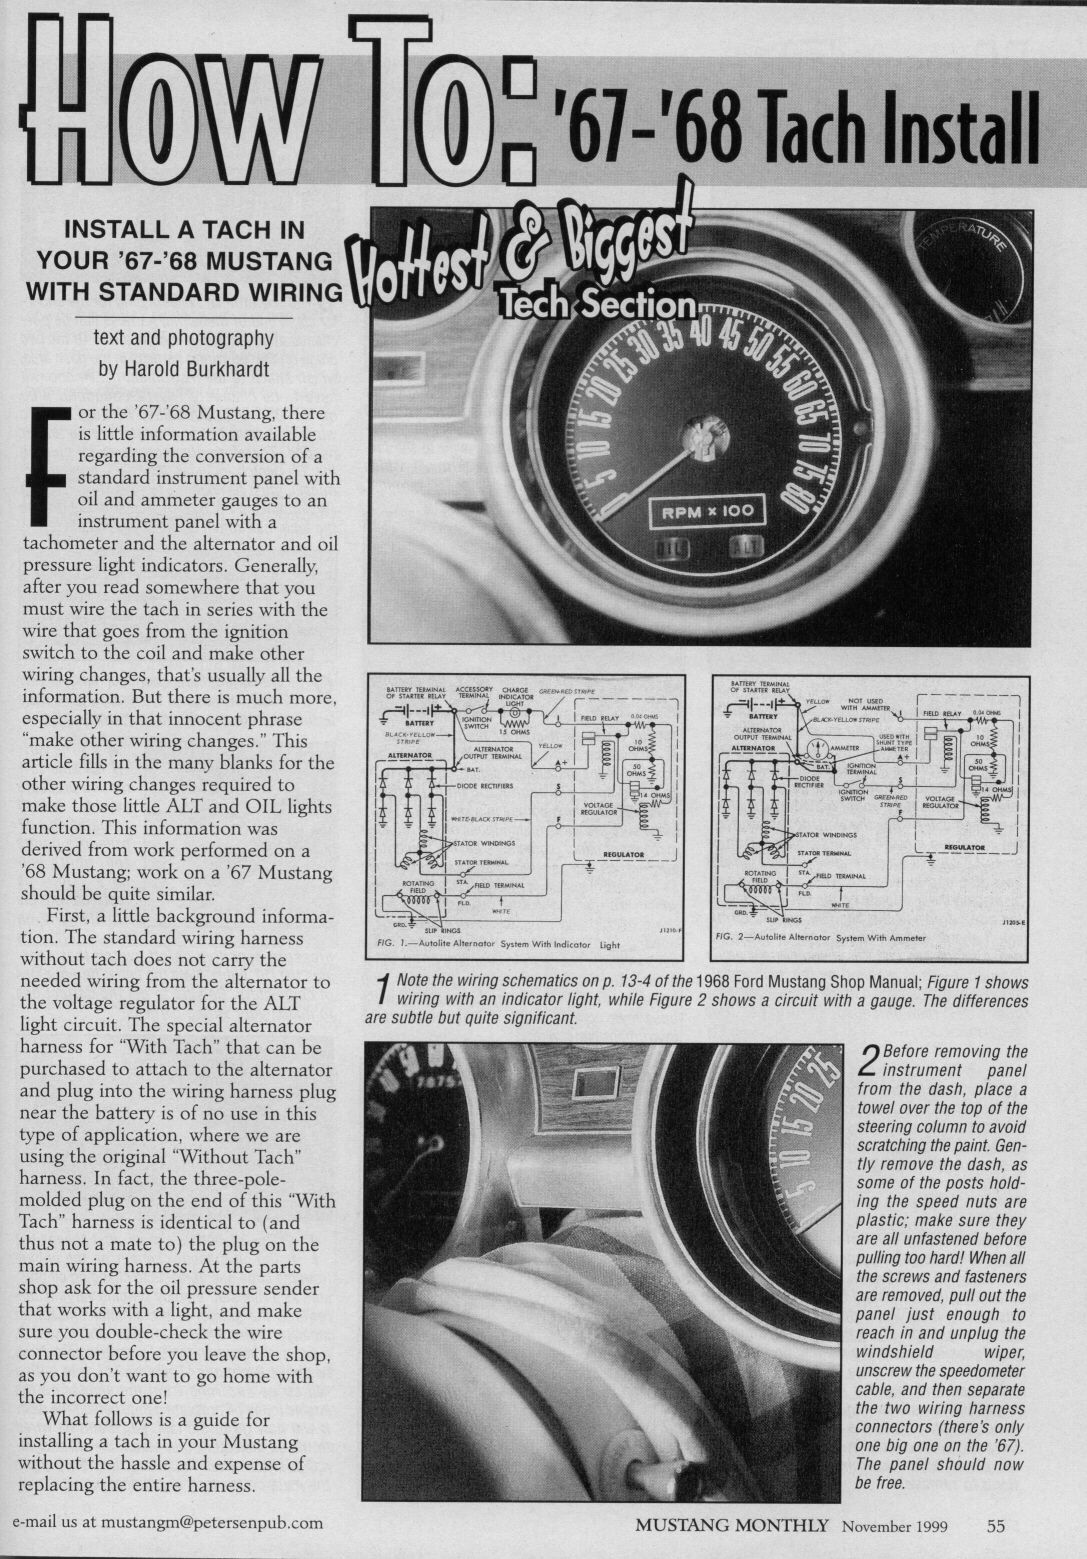 How To 1967 1968 Mustang Tach Install November 1999 Mustang Monthly Ford Mustang Forum 1968 Mustang Mustang 1967 Mustang